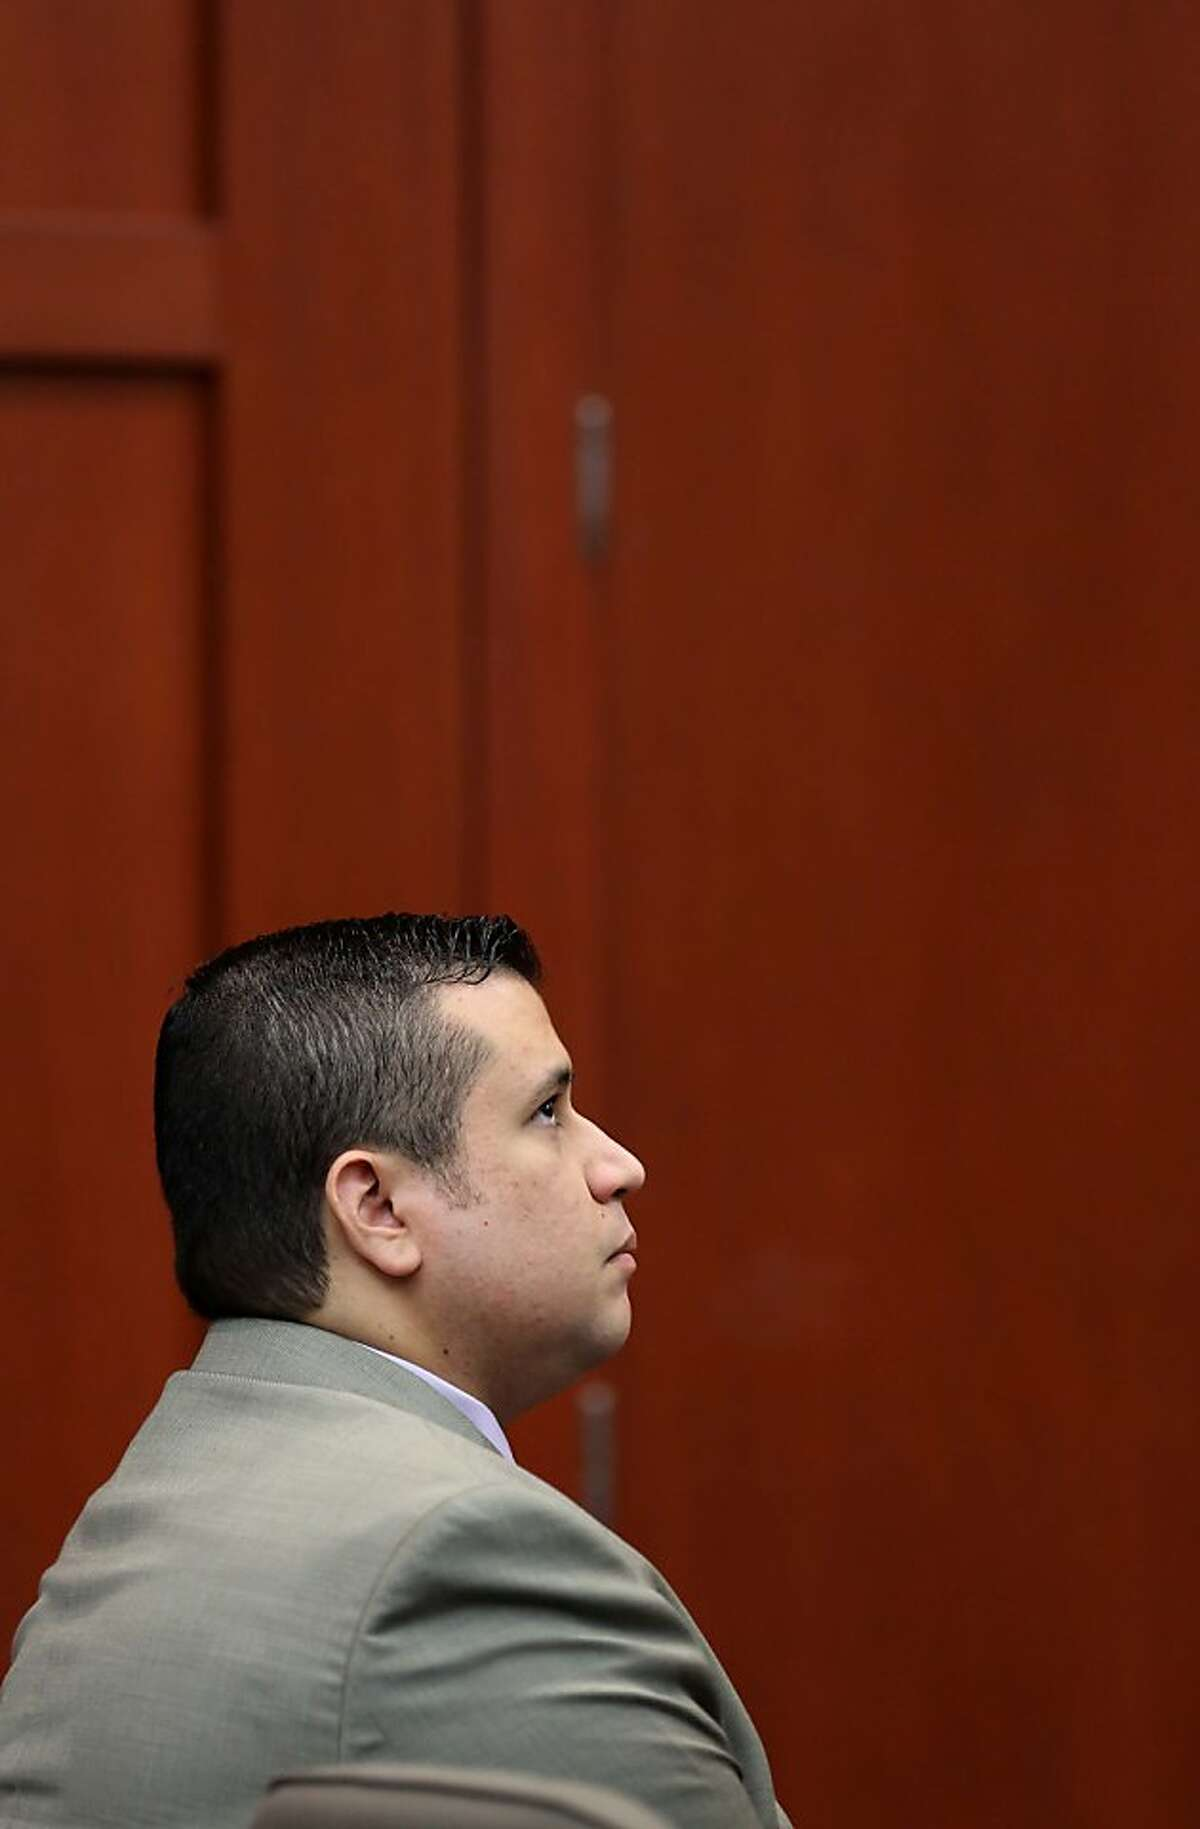 George Zimmerman, accused in the Trayvon Martin shooting, listens to testimony in Seminole circuit court for a pretrial hearing, in Sanford, Fla., Saturday, June 8, 2013.(AP Photo/Orlando Sentinel, Joe Burbank/Pool)